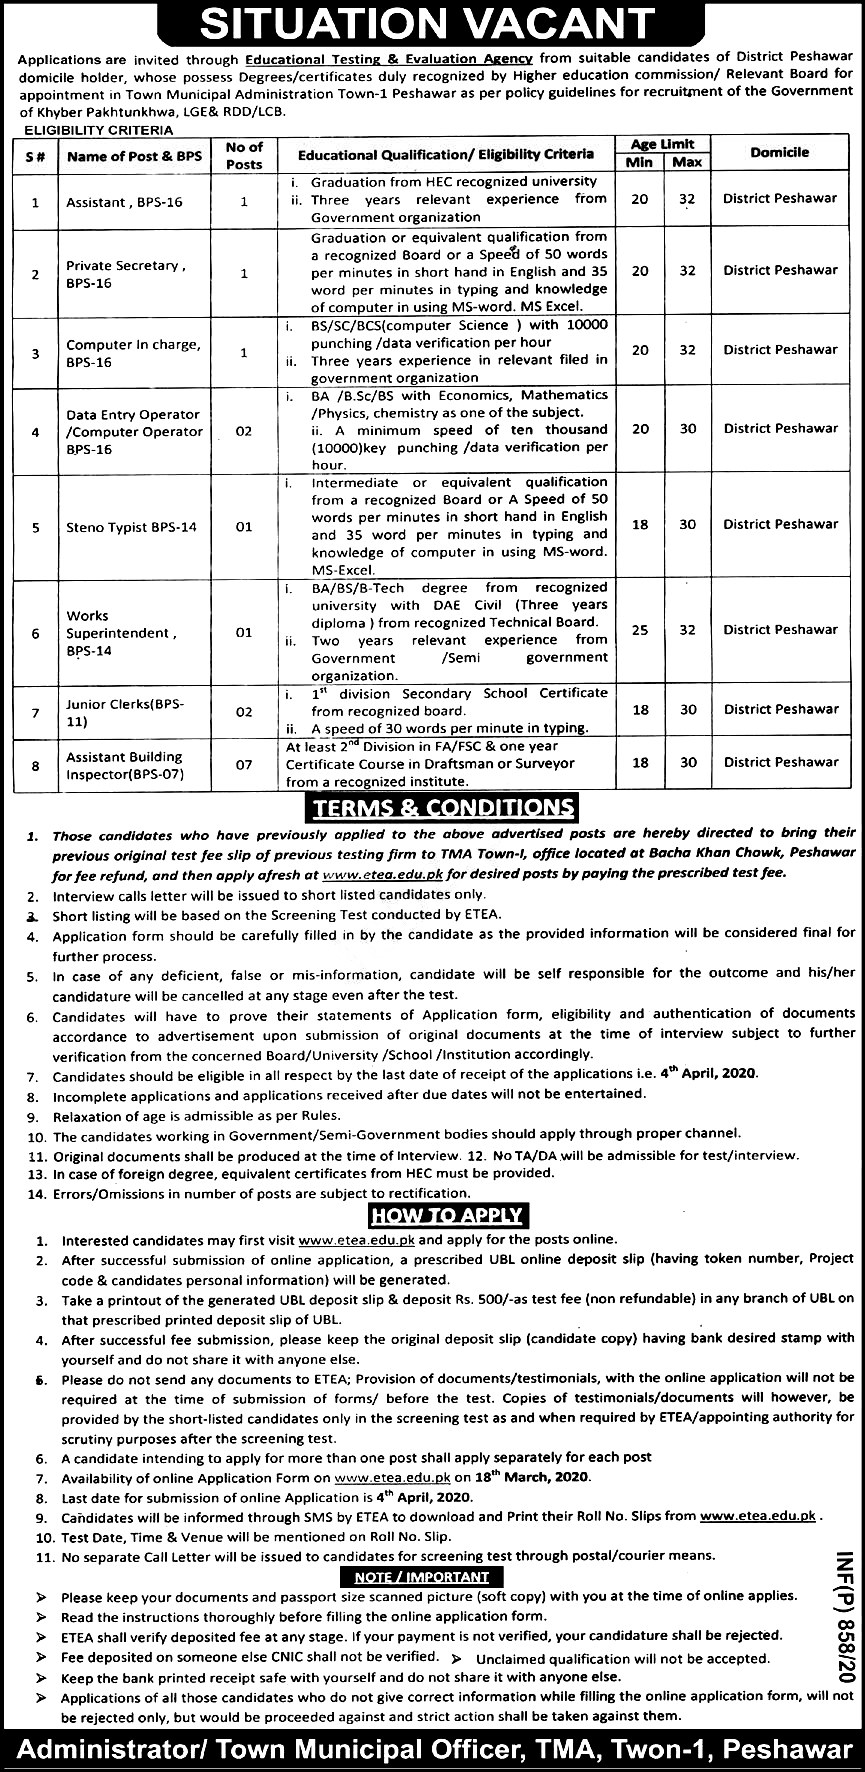 Town Municipal Administration Peshawar ETEA Jobs 2021 Application Form Eligibility Criteria